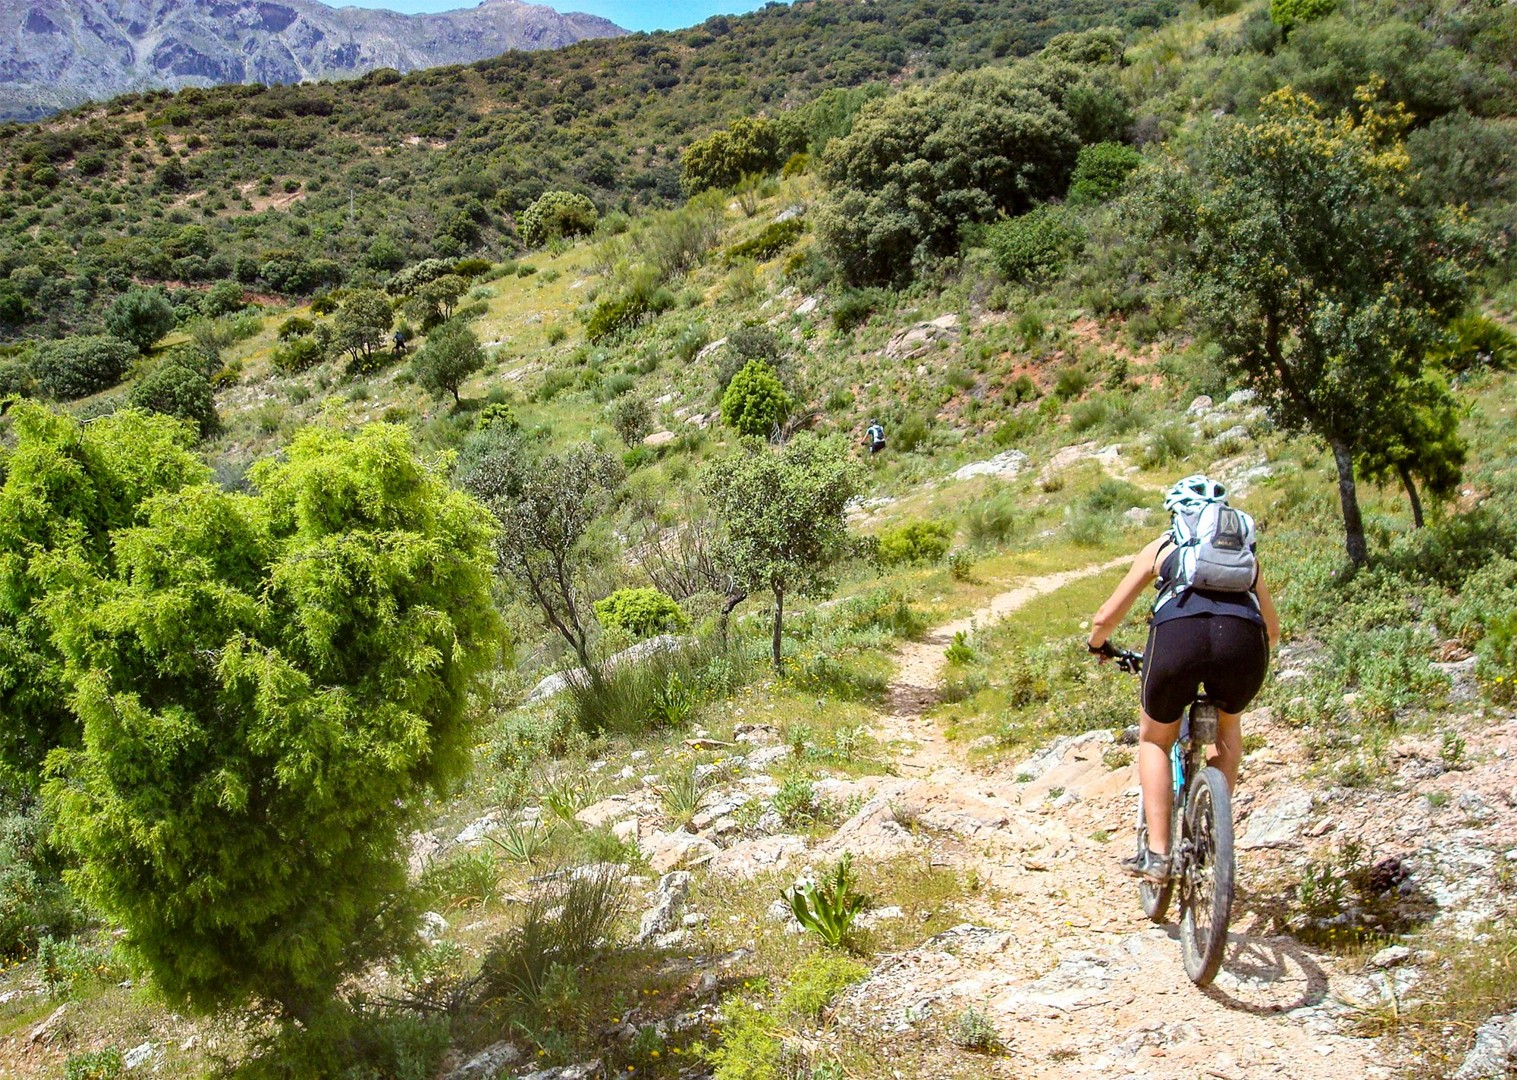 transandaluz4.jpg - Spain - Trans Andaluz - Guided Mountain Bike Holiday - Mountain Biking